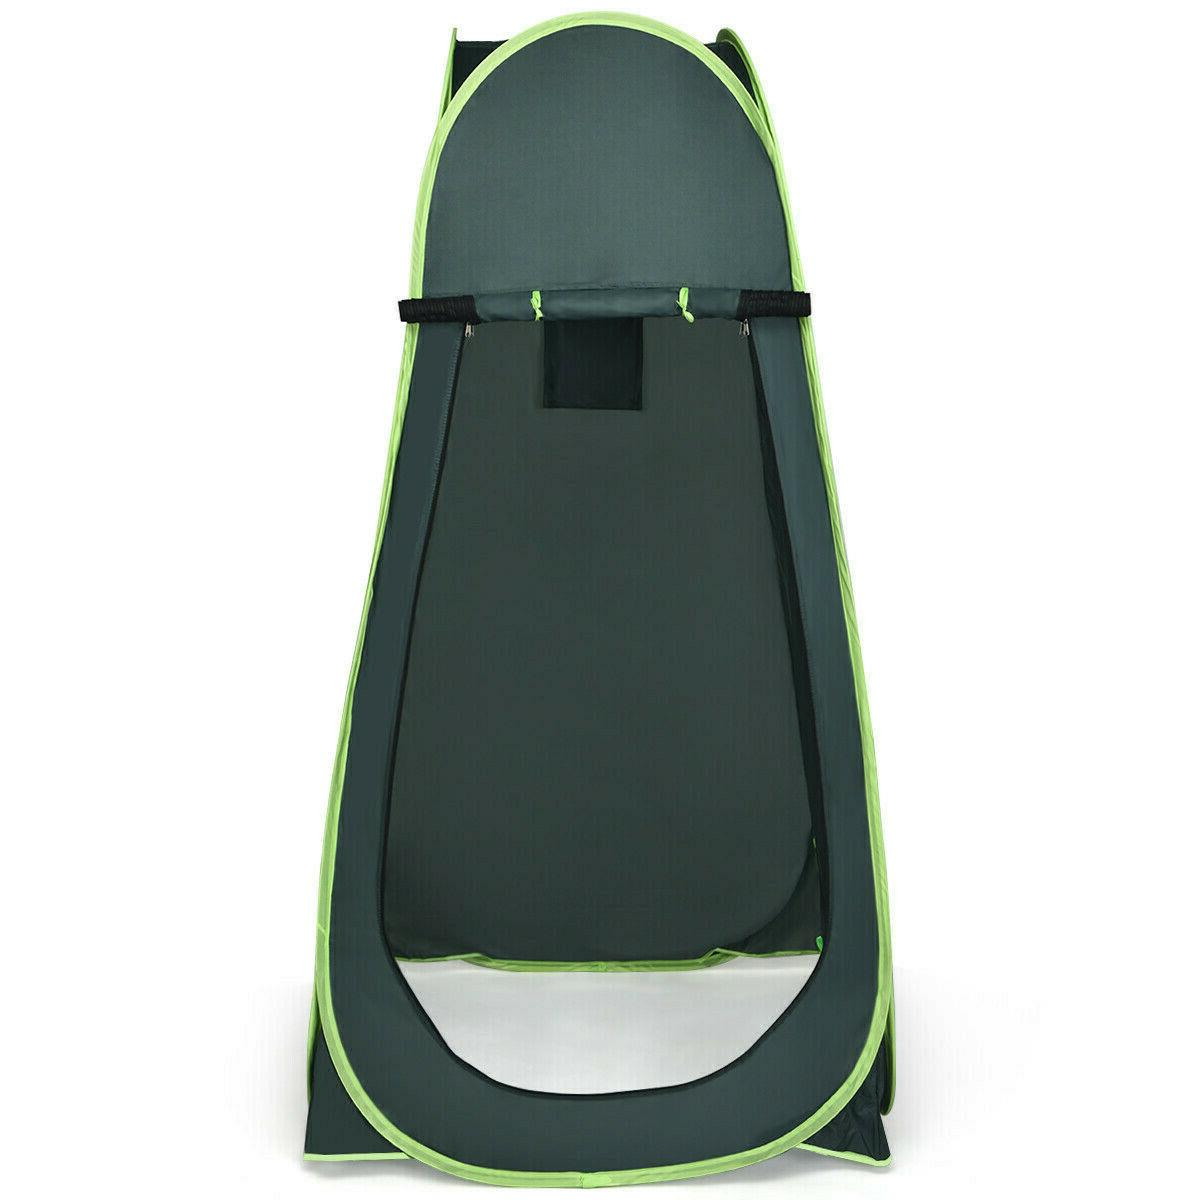 Up Clothes Room Tent Camping